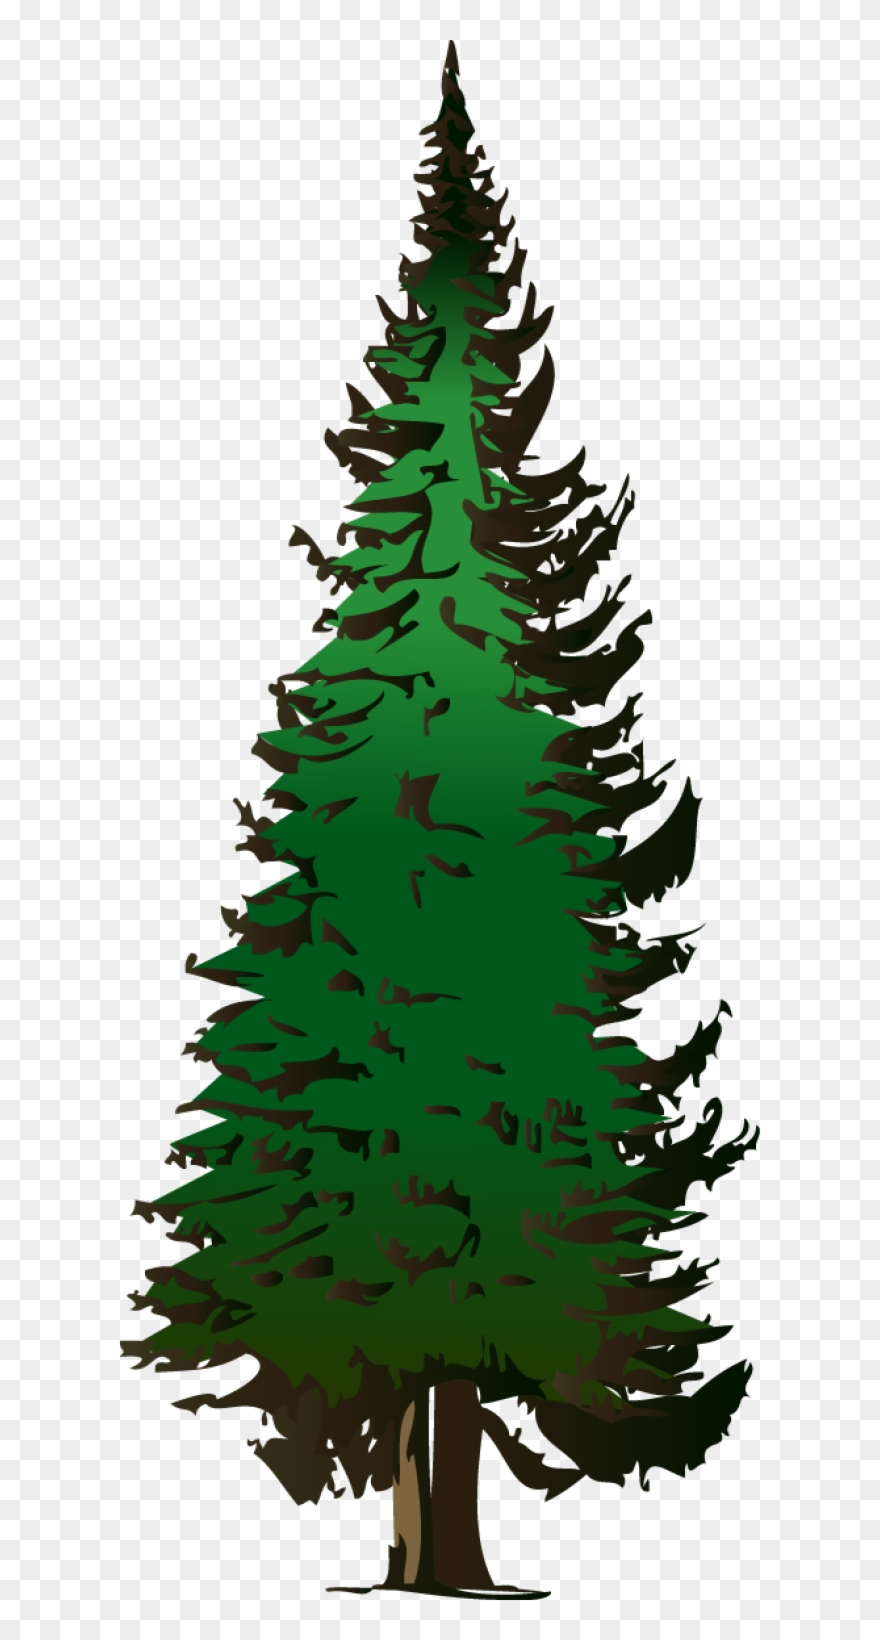 hight resolution of pine tree vector free download pine tree clipart png transparent png